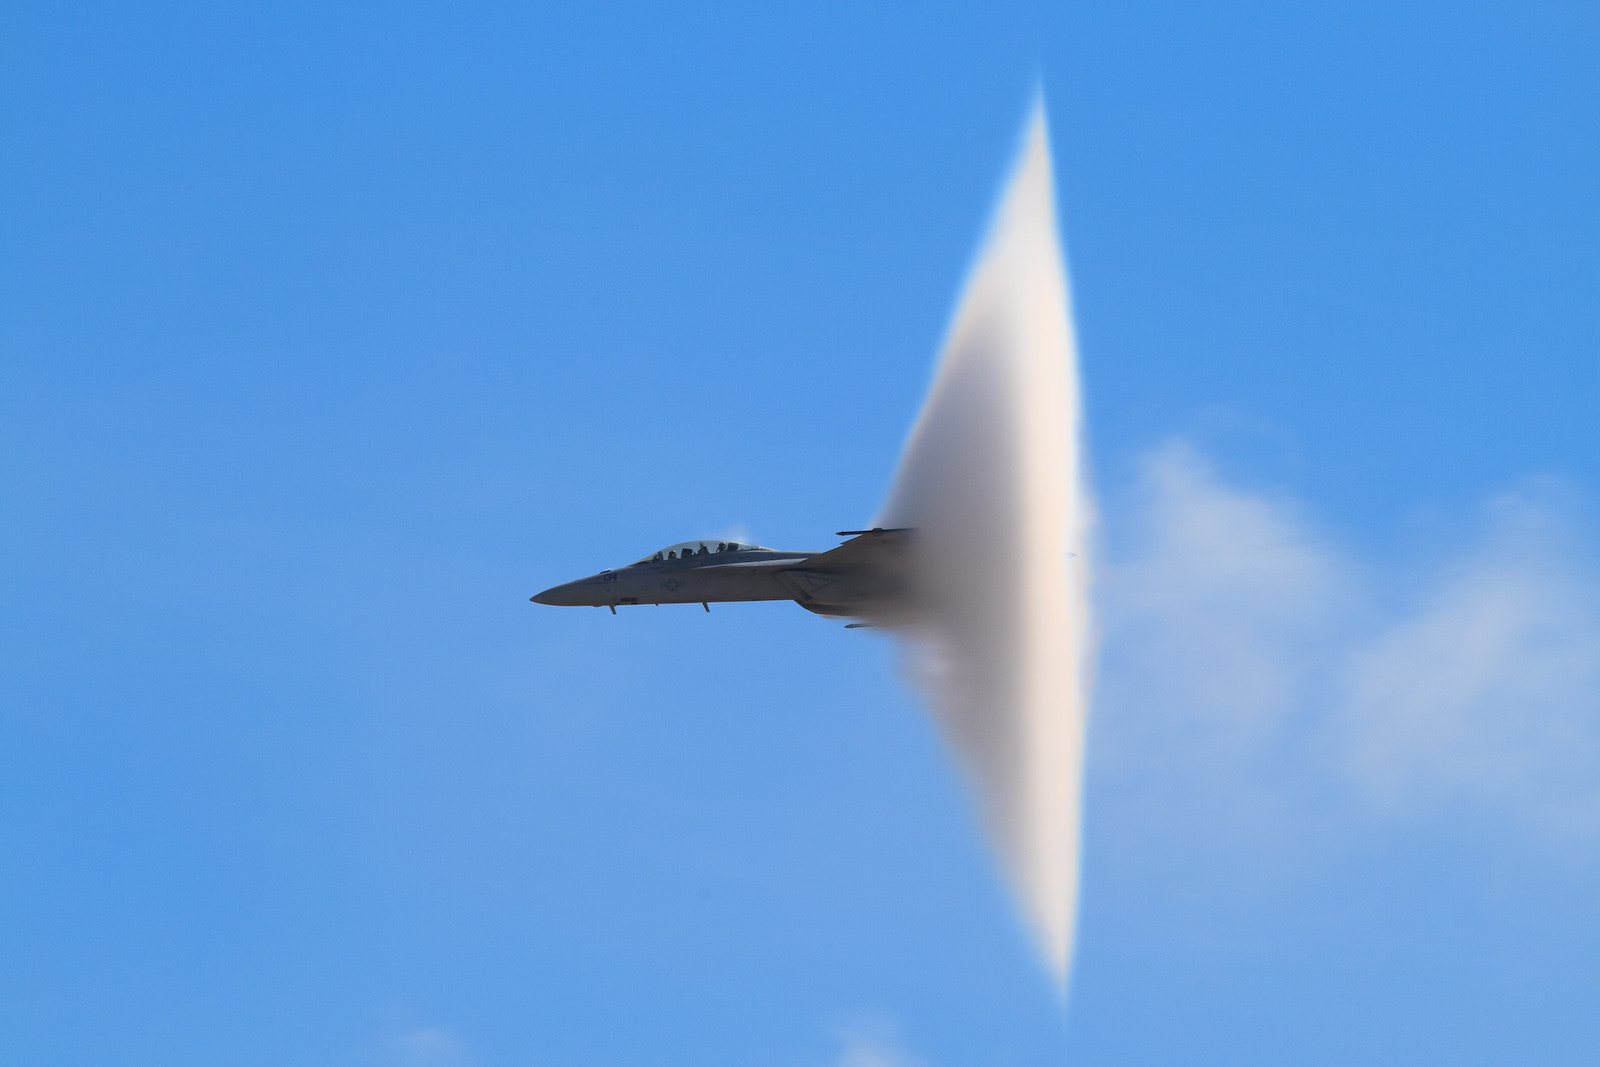 Photograph F-18 Vapor Cone by Steve Skinner on 500px